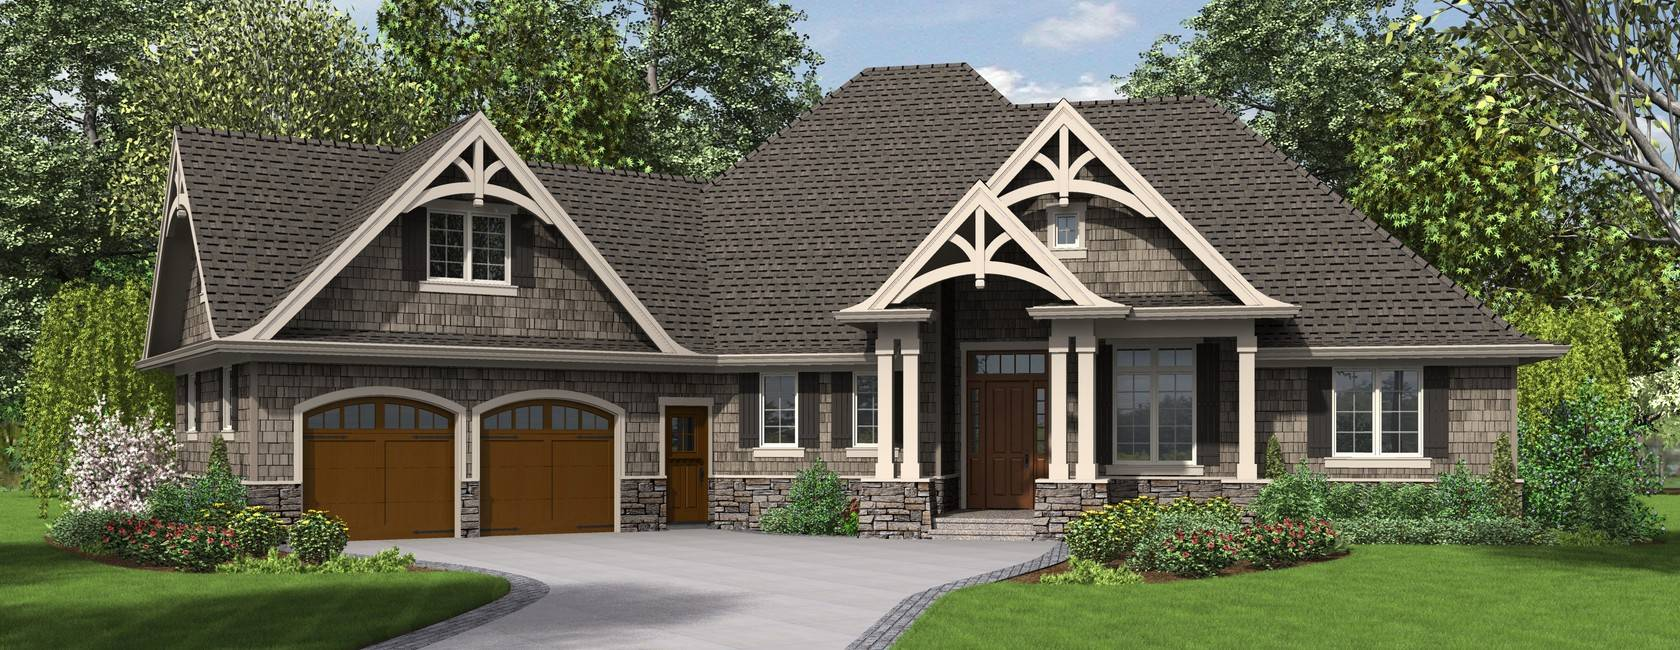 craftsman house plan ripley house plans 25360